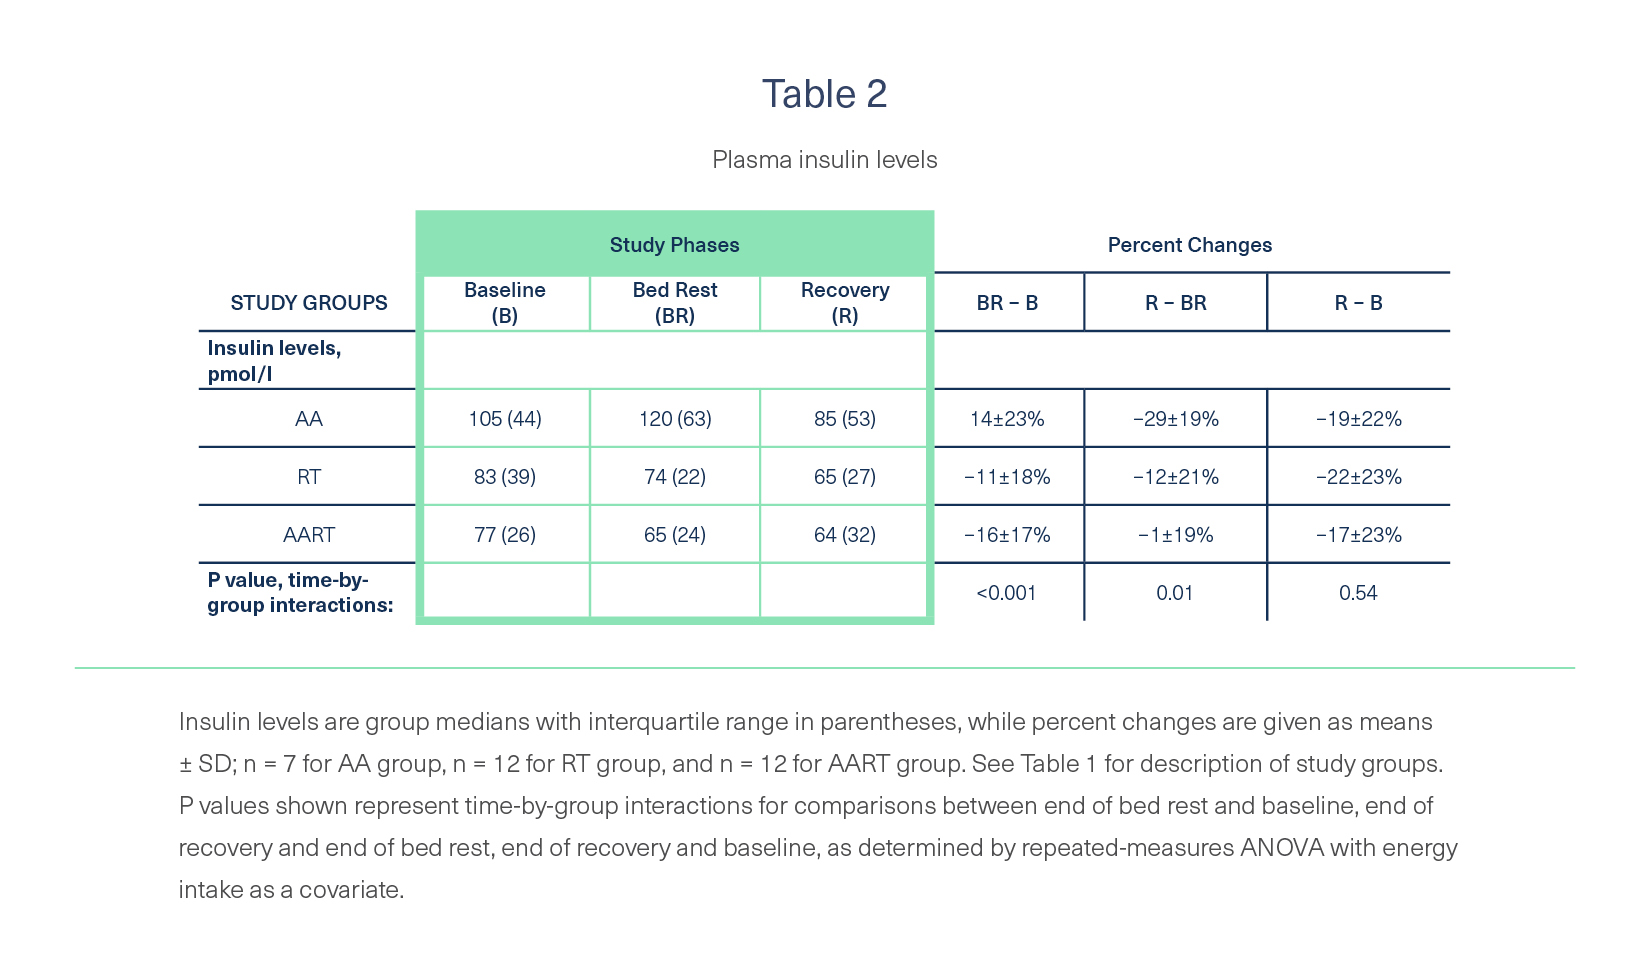 Difference of insulin levels between the three groups from the start to the end of strict bed rest.